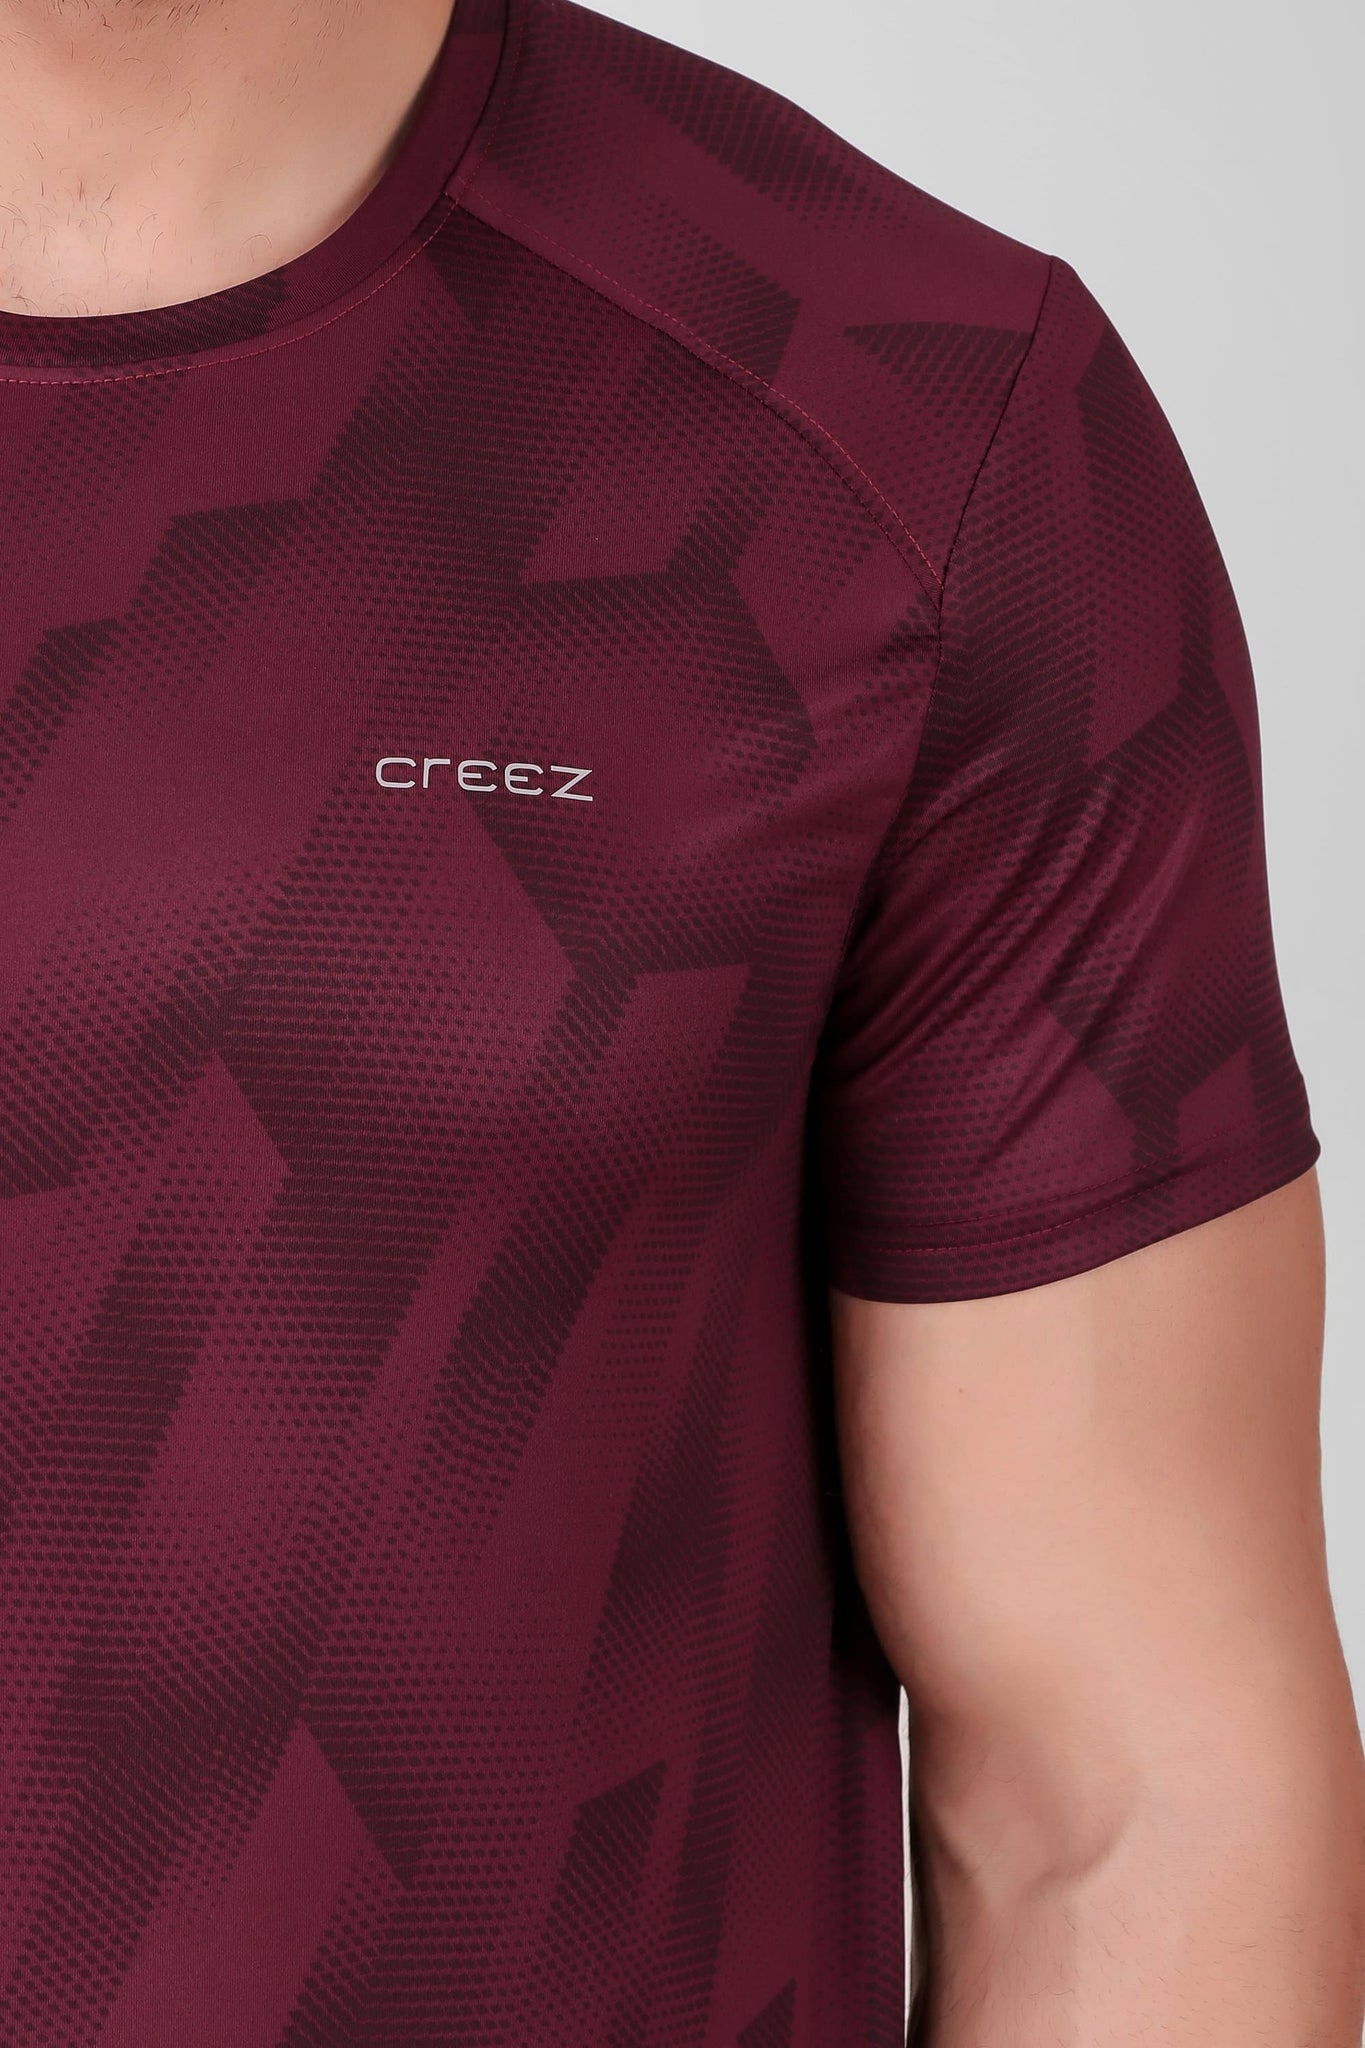 Creez Hustle Printed Stretchable Sports and Gym Dark Olive Men's Tshirt Close 01